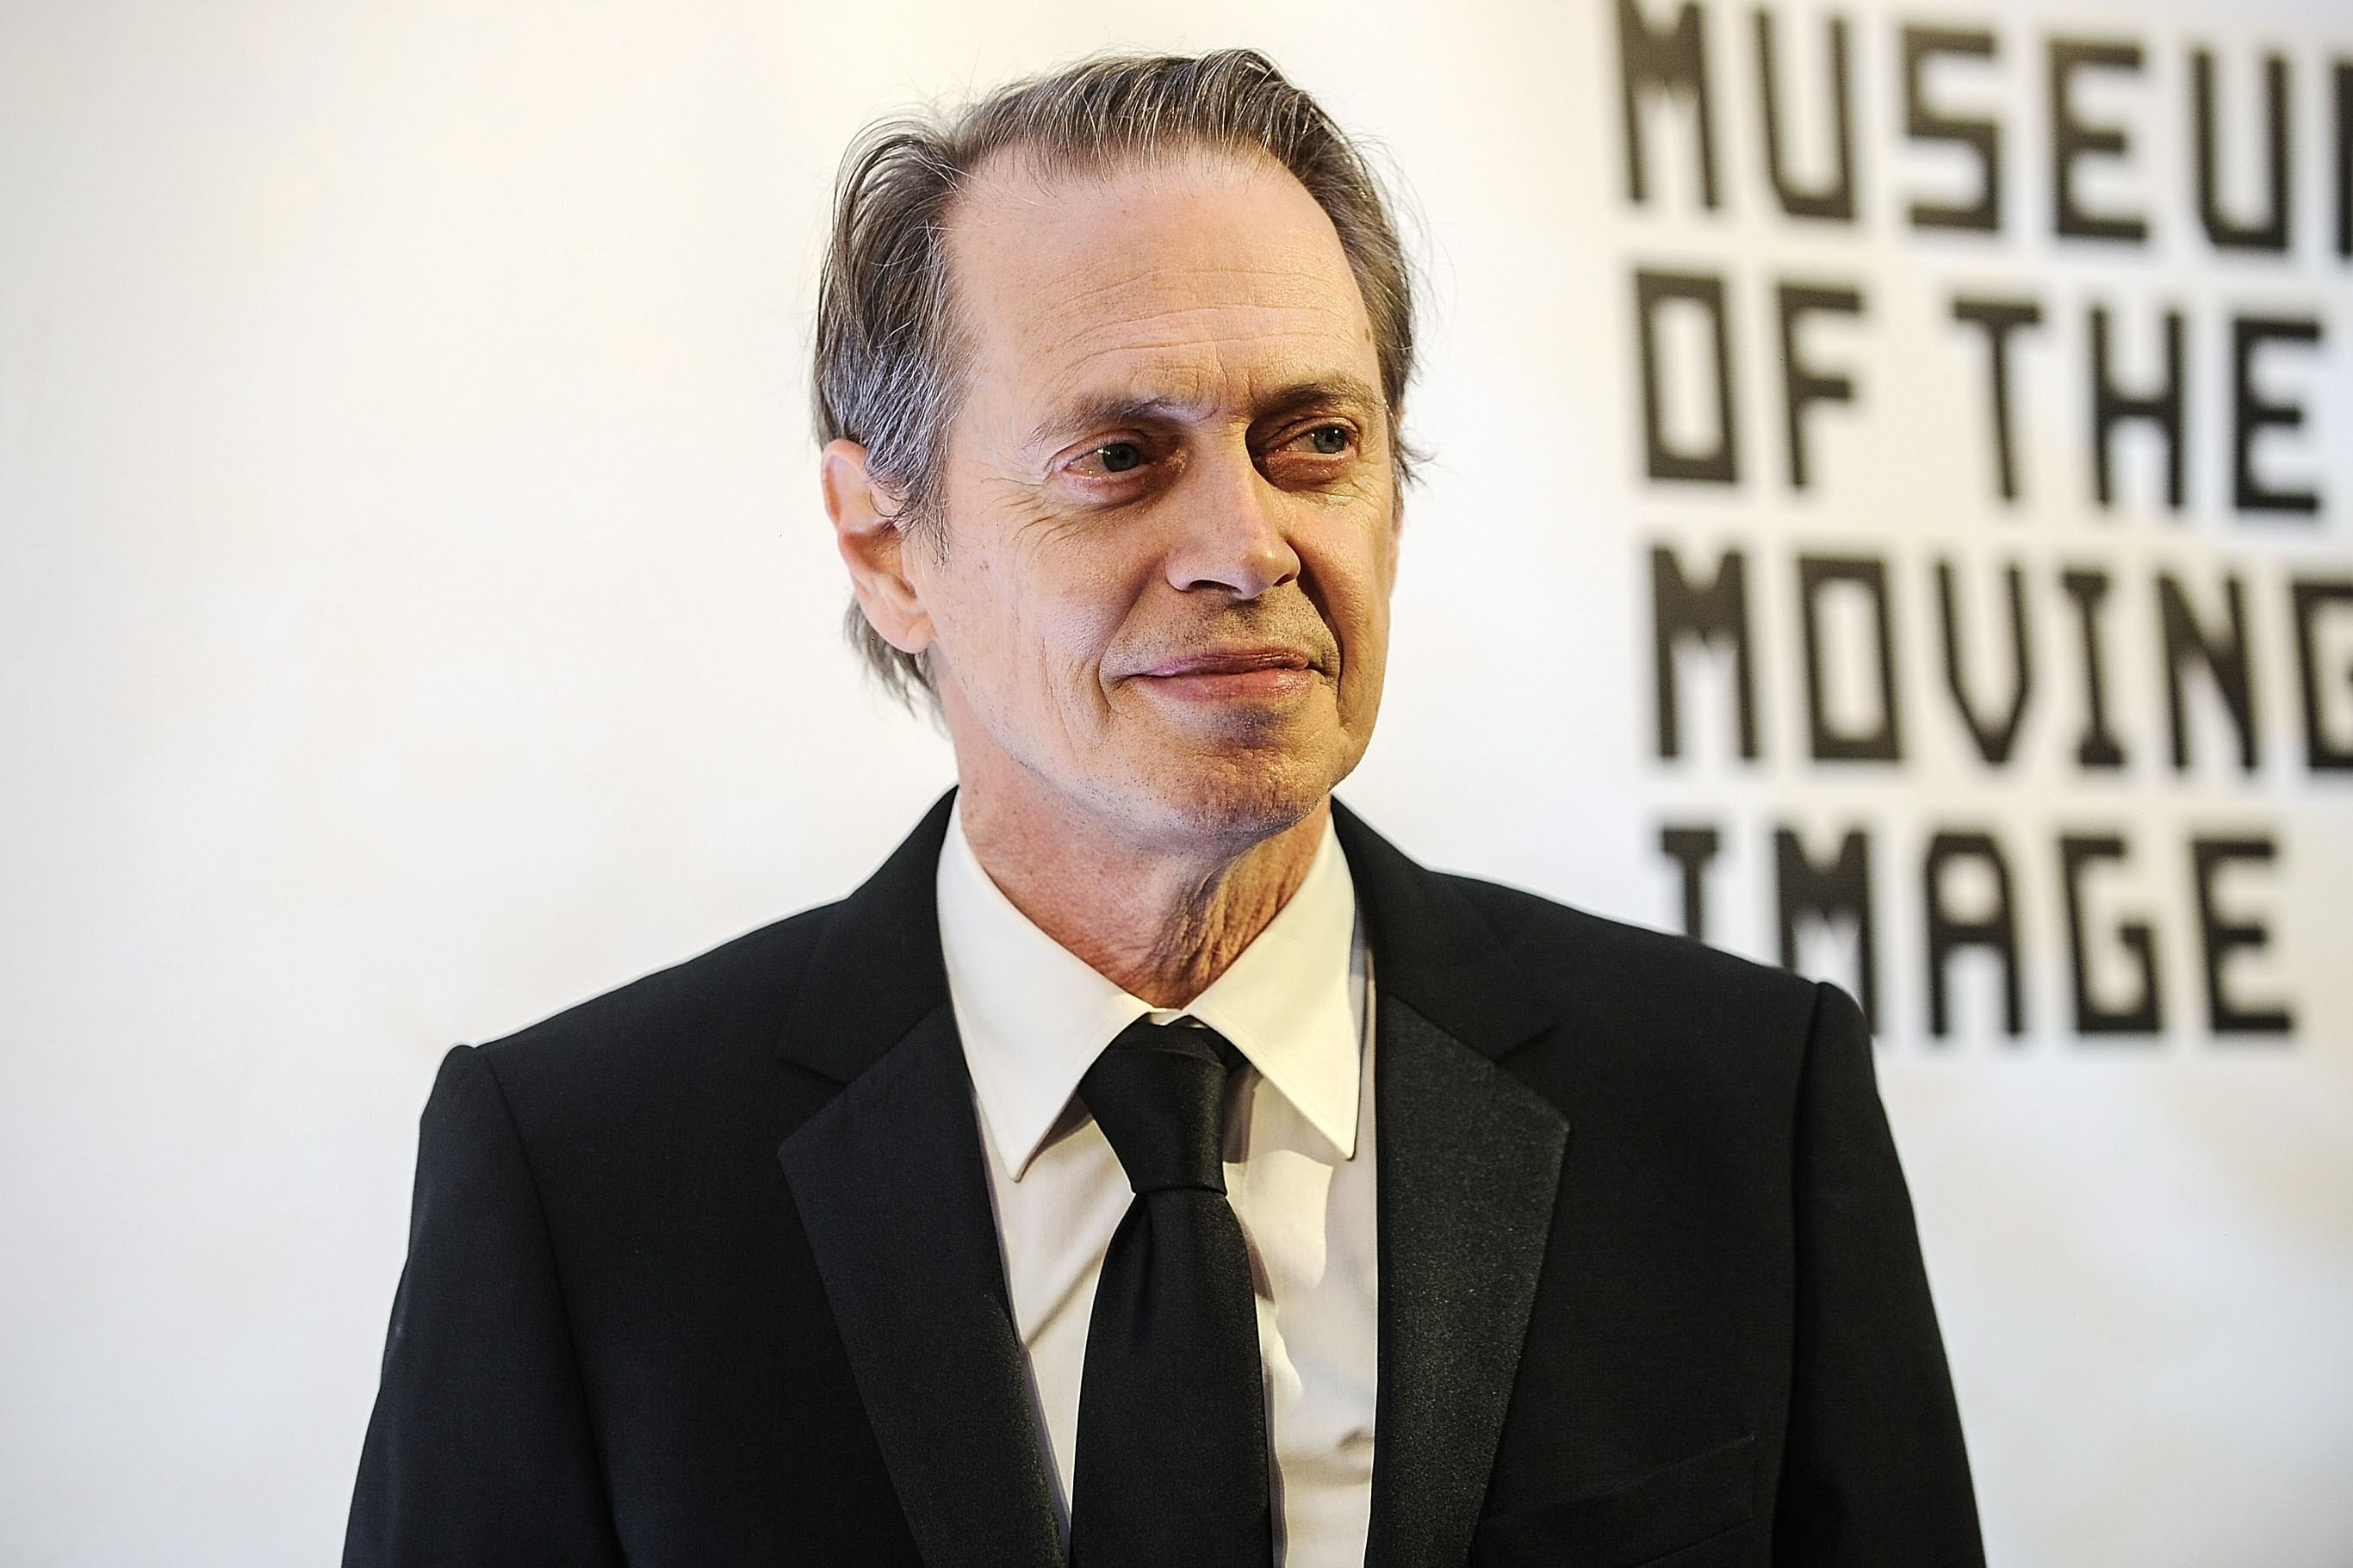 Steve Buscemi, The Retired Firefighter Who Joined His Old Unit To Help During 9/11 UNILAD buscemi 911 12